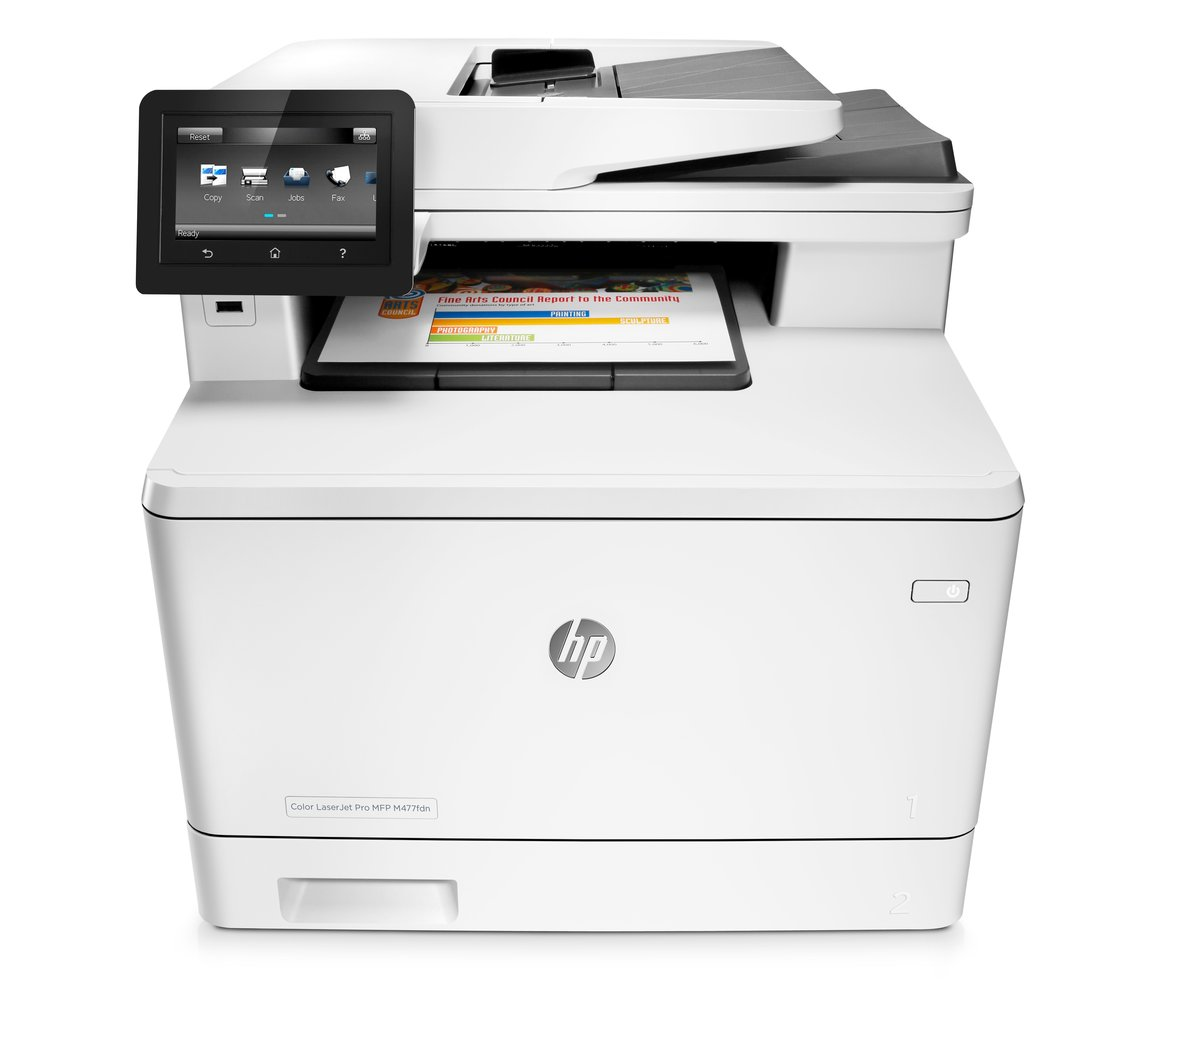 hp laserjet pro color laser all in one printer copier scanner fax